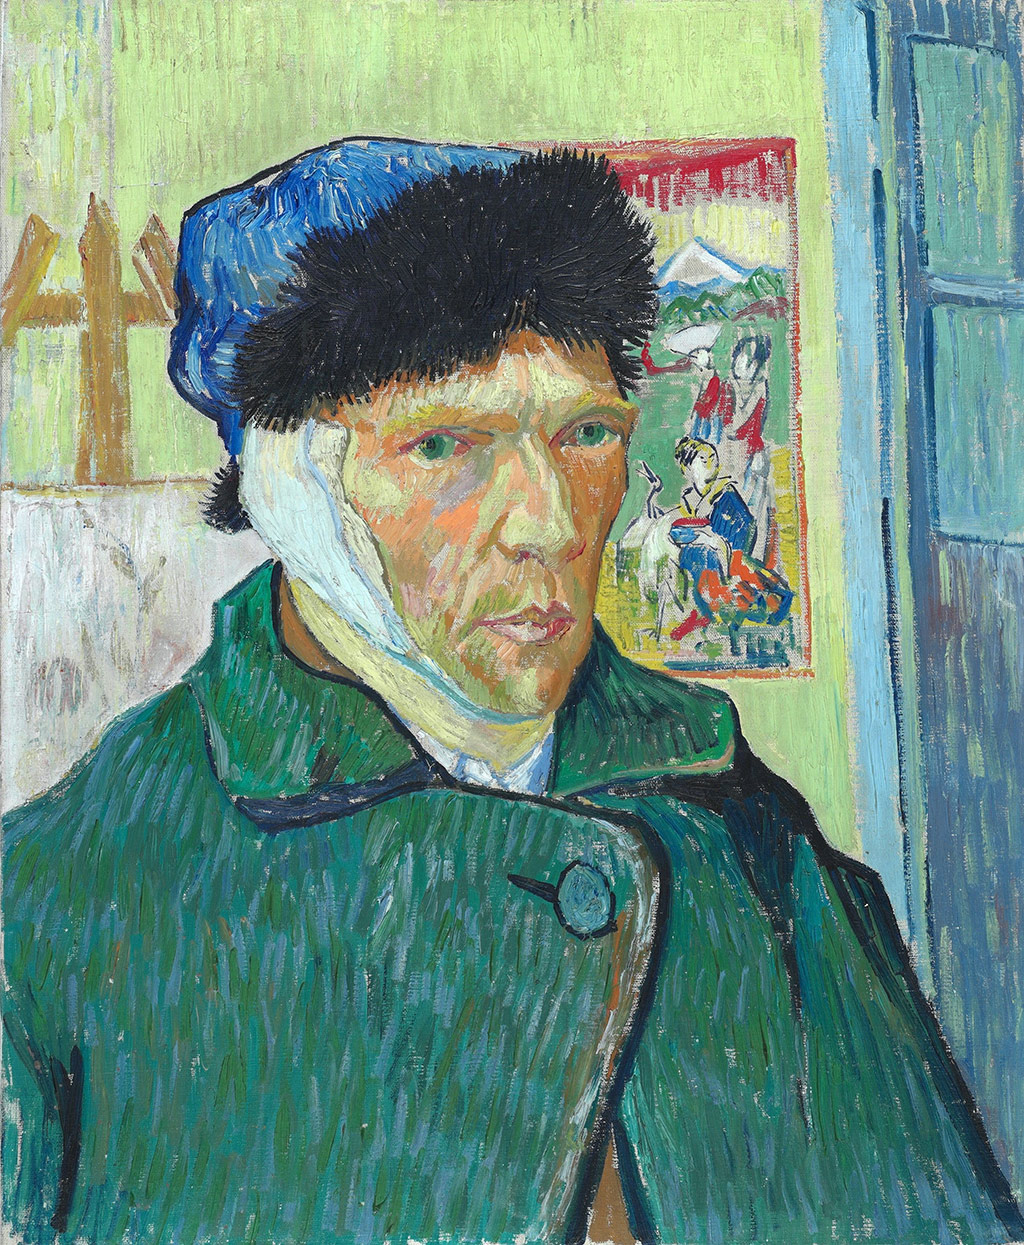 Vincent van Gogh, Self-portrait with bandaged ear, Artophilia